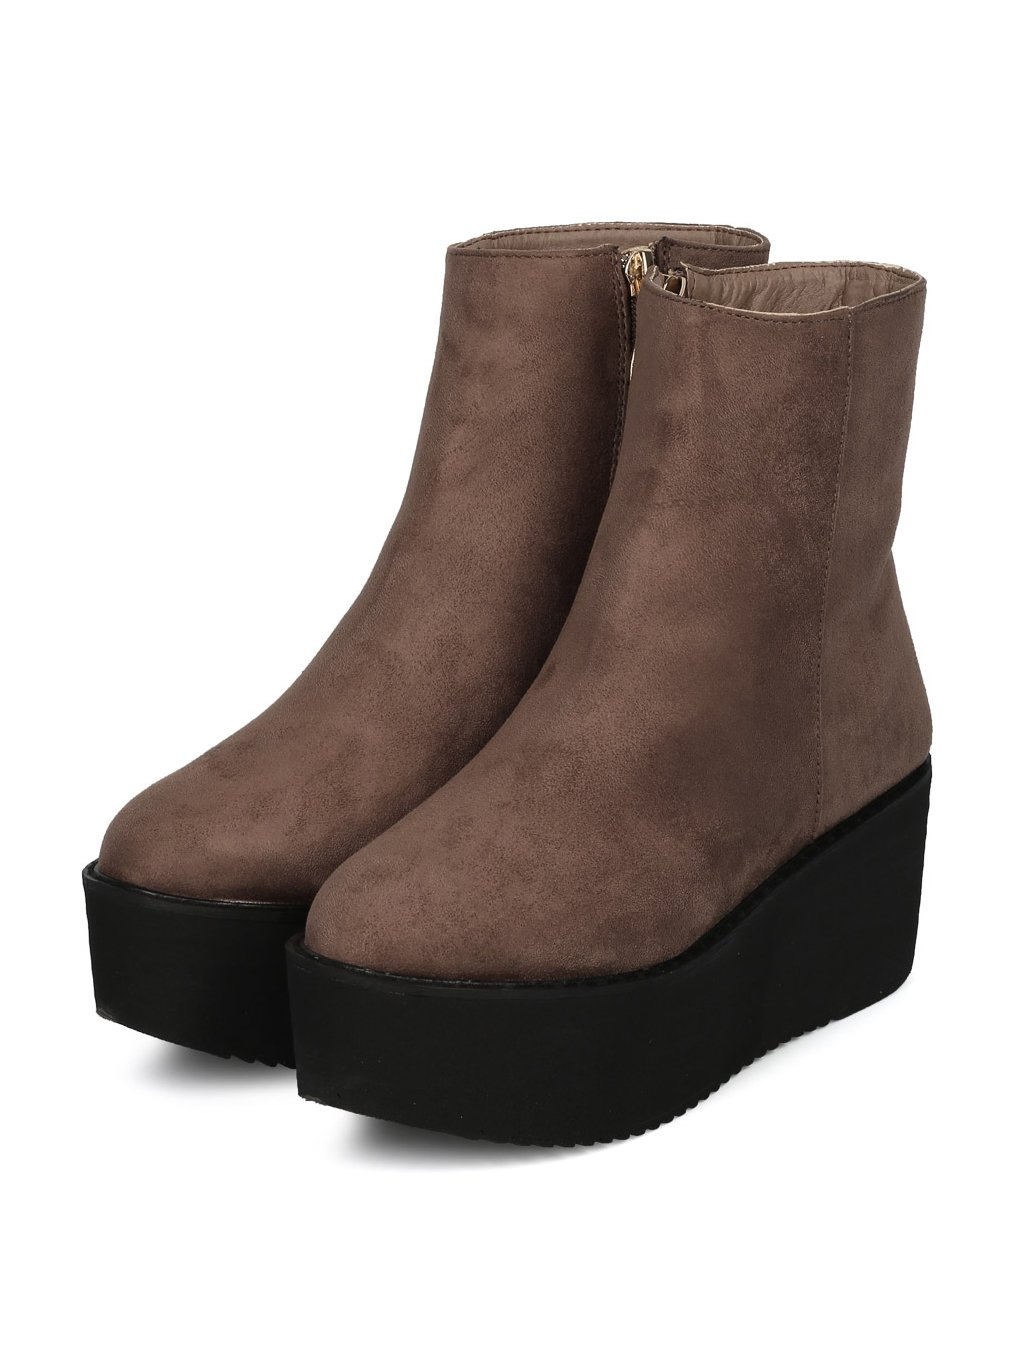 Indulge Hebe-I Women Round Toe Platform Creeper Ankle Bootie HE66 - Taupe Faux Suede (Size: 7.0) by Indulge (Image #4)